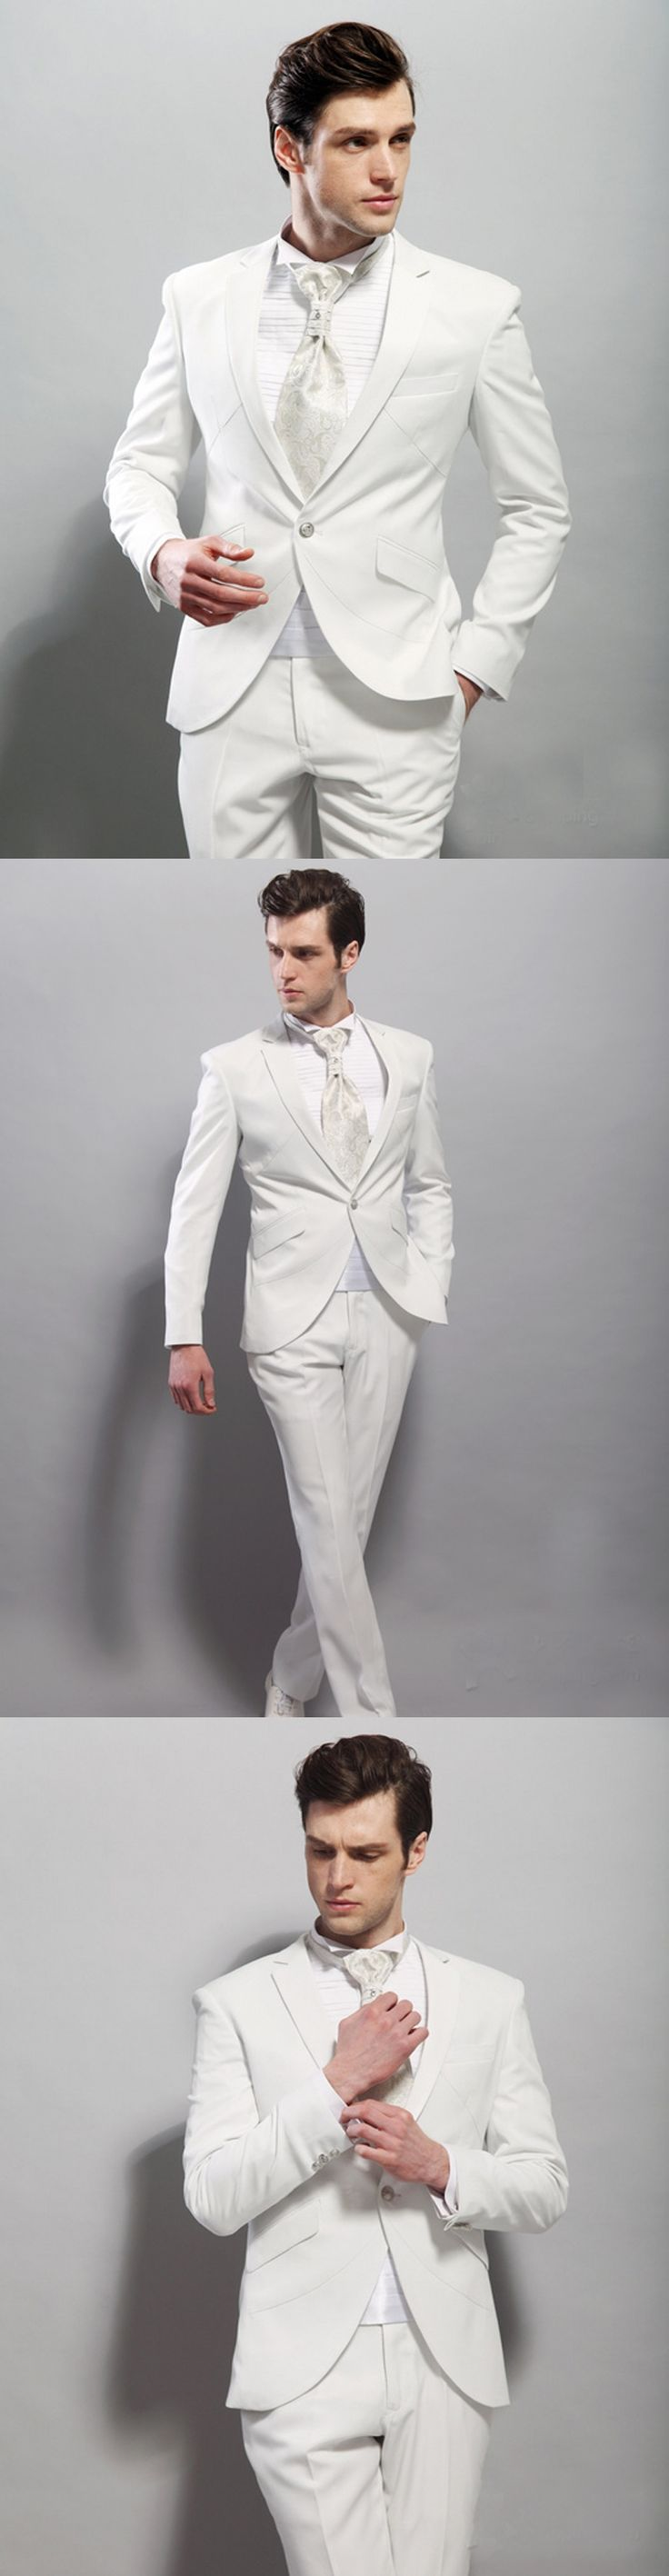 2017 Handsome Italian Style White Groom Tuxedos 2 Piece Best Man Suit Slim Fit Wedding Prom Dinner Suits For Men terno masculino